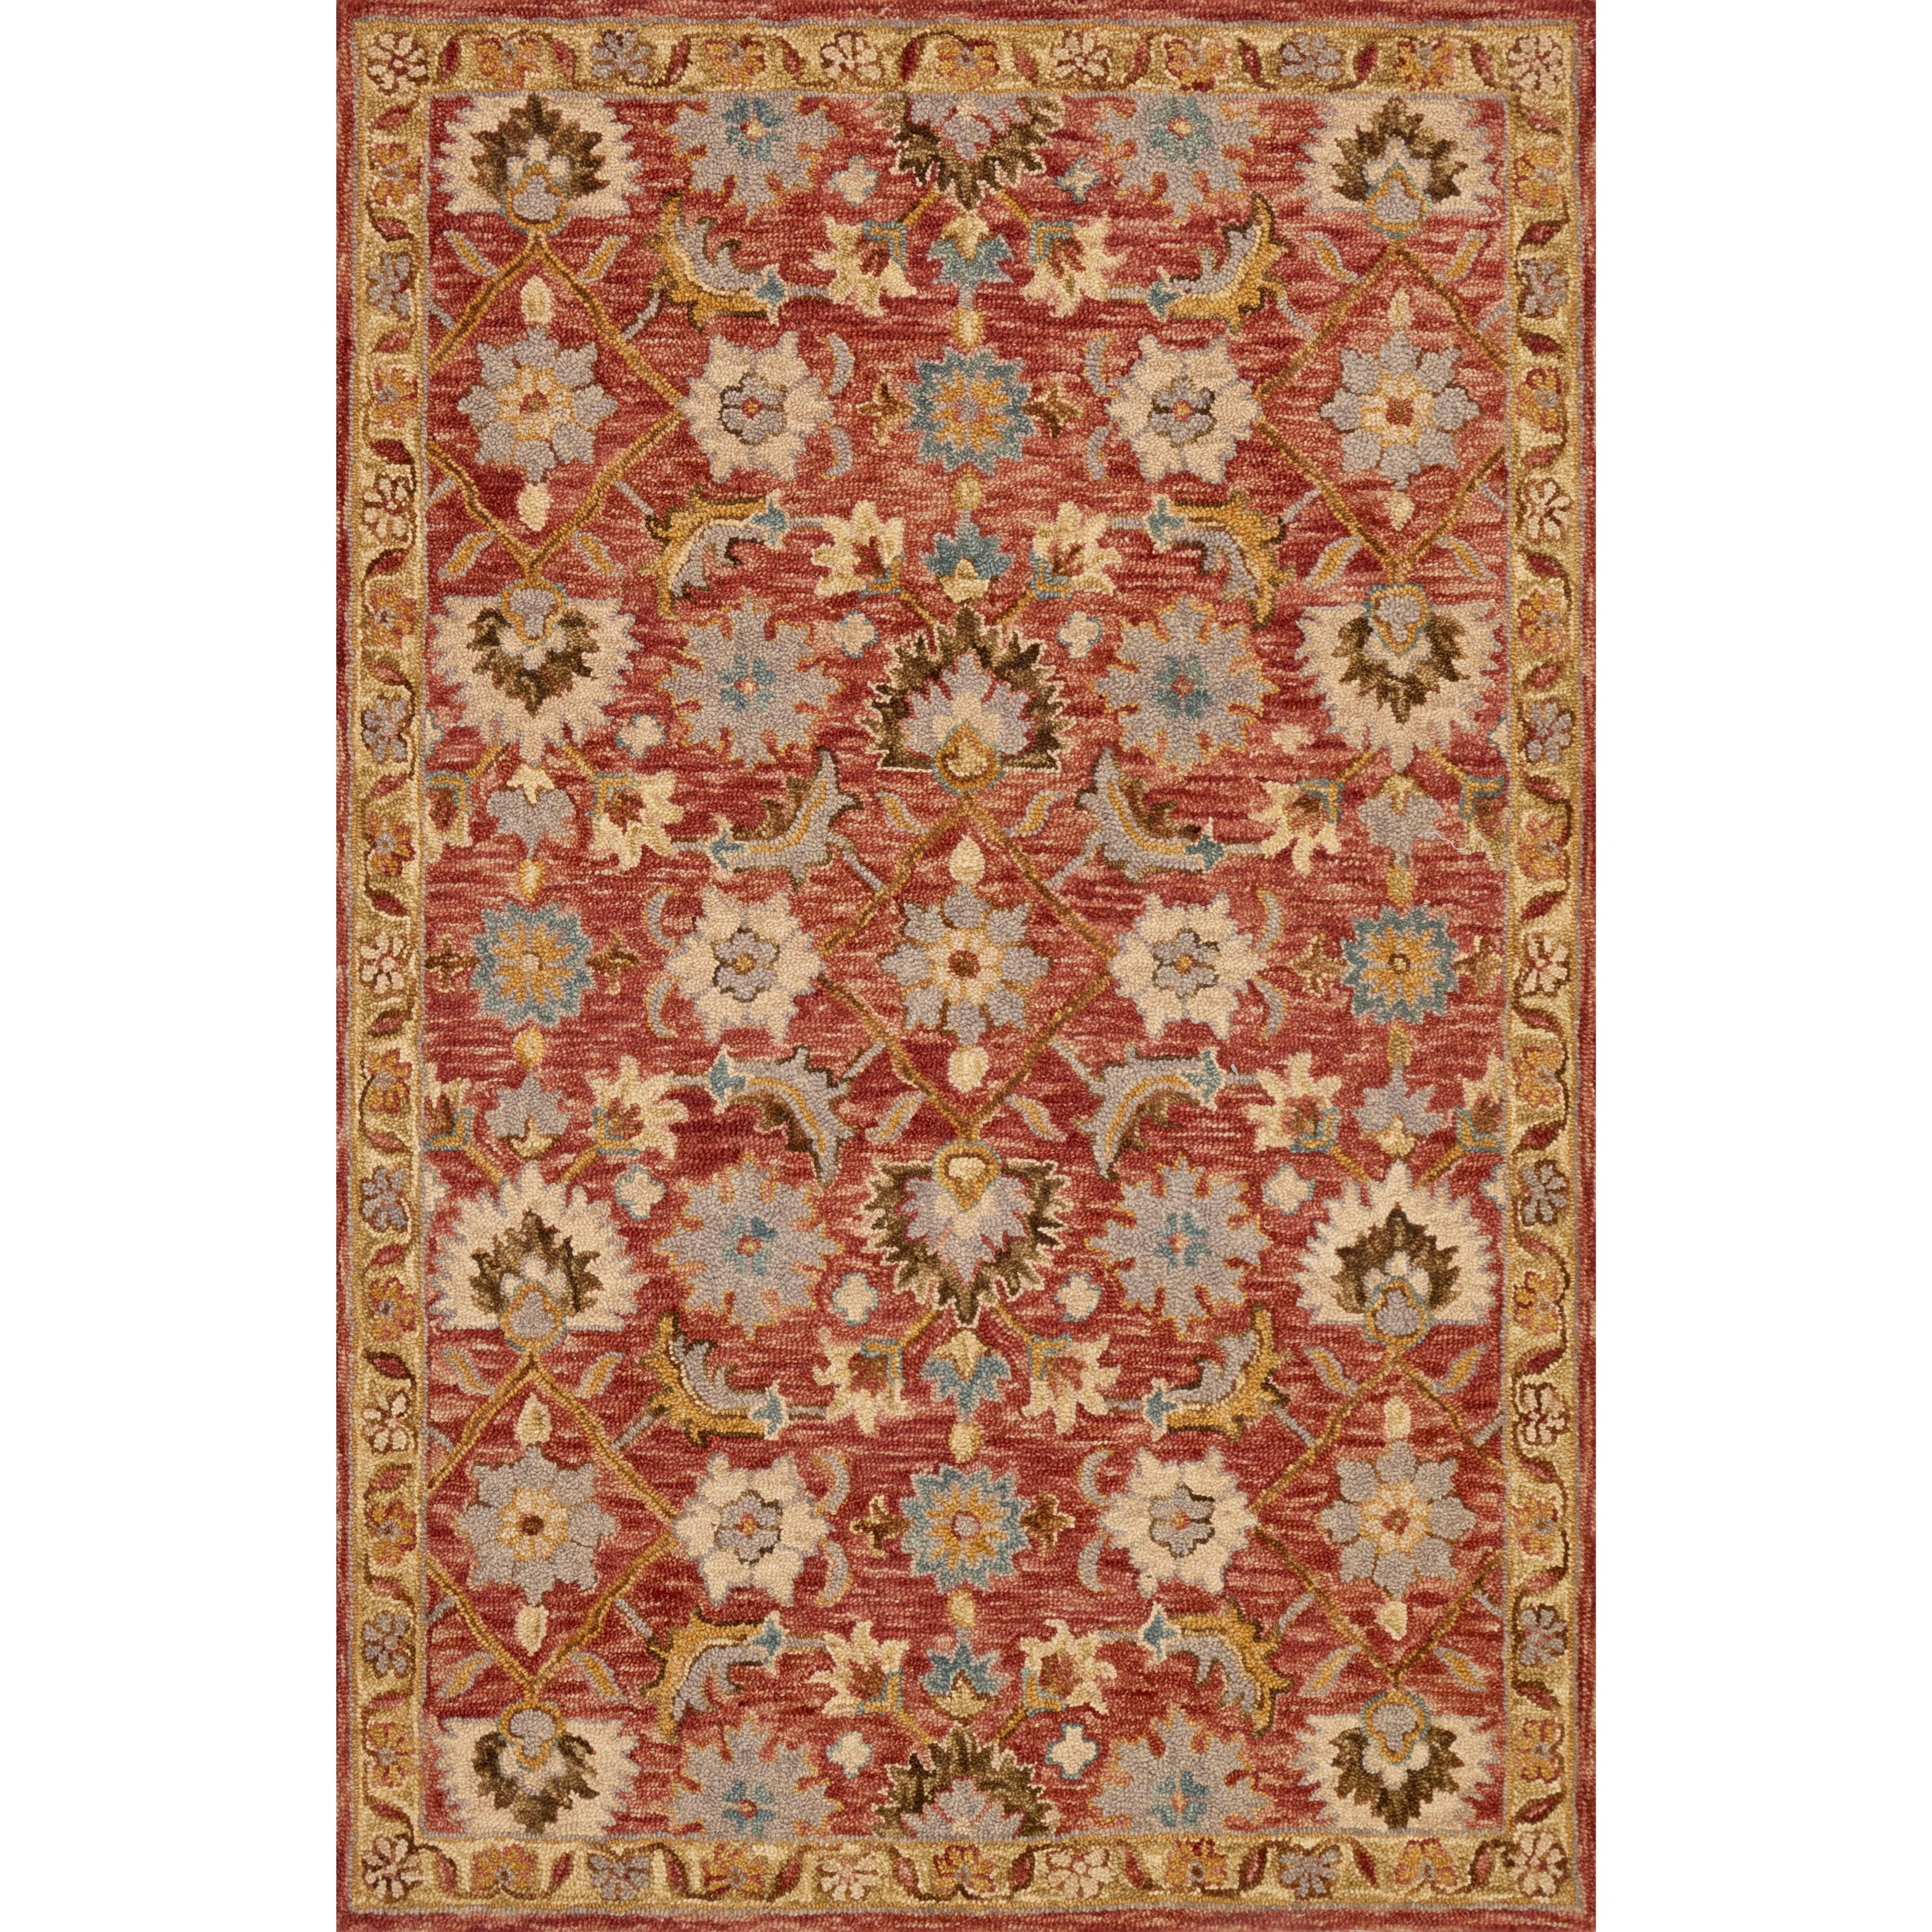 """Victoria 1'6"""" x 1'6""""  Terracotta / Gold Rug by Loloi Rugs at Virginia Furniture Market"""